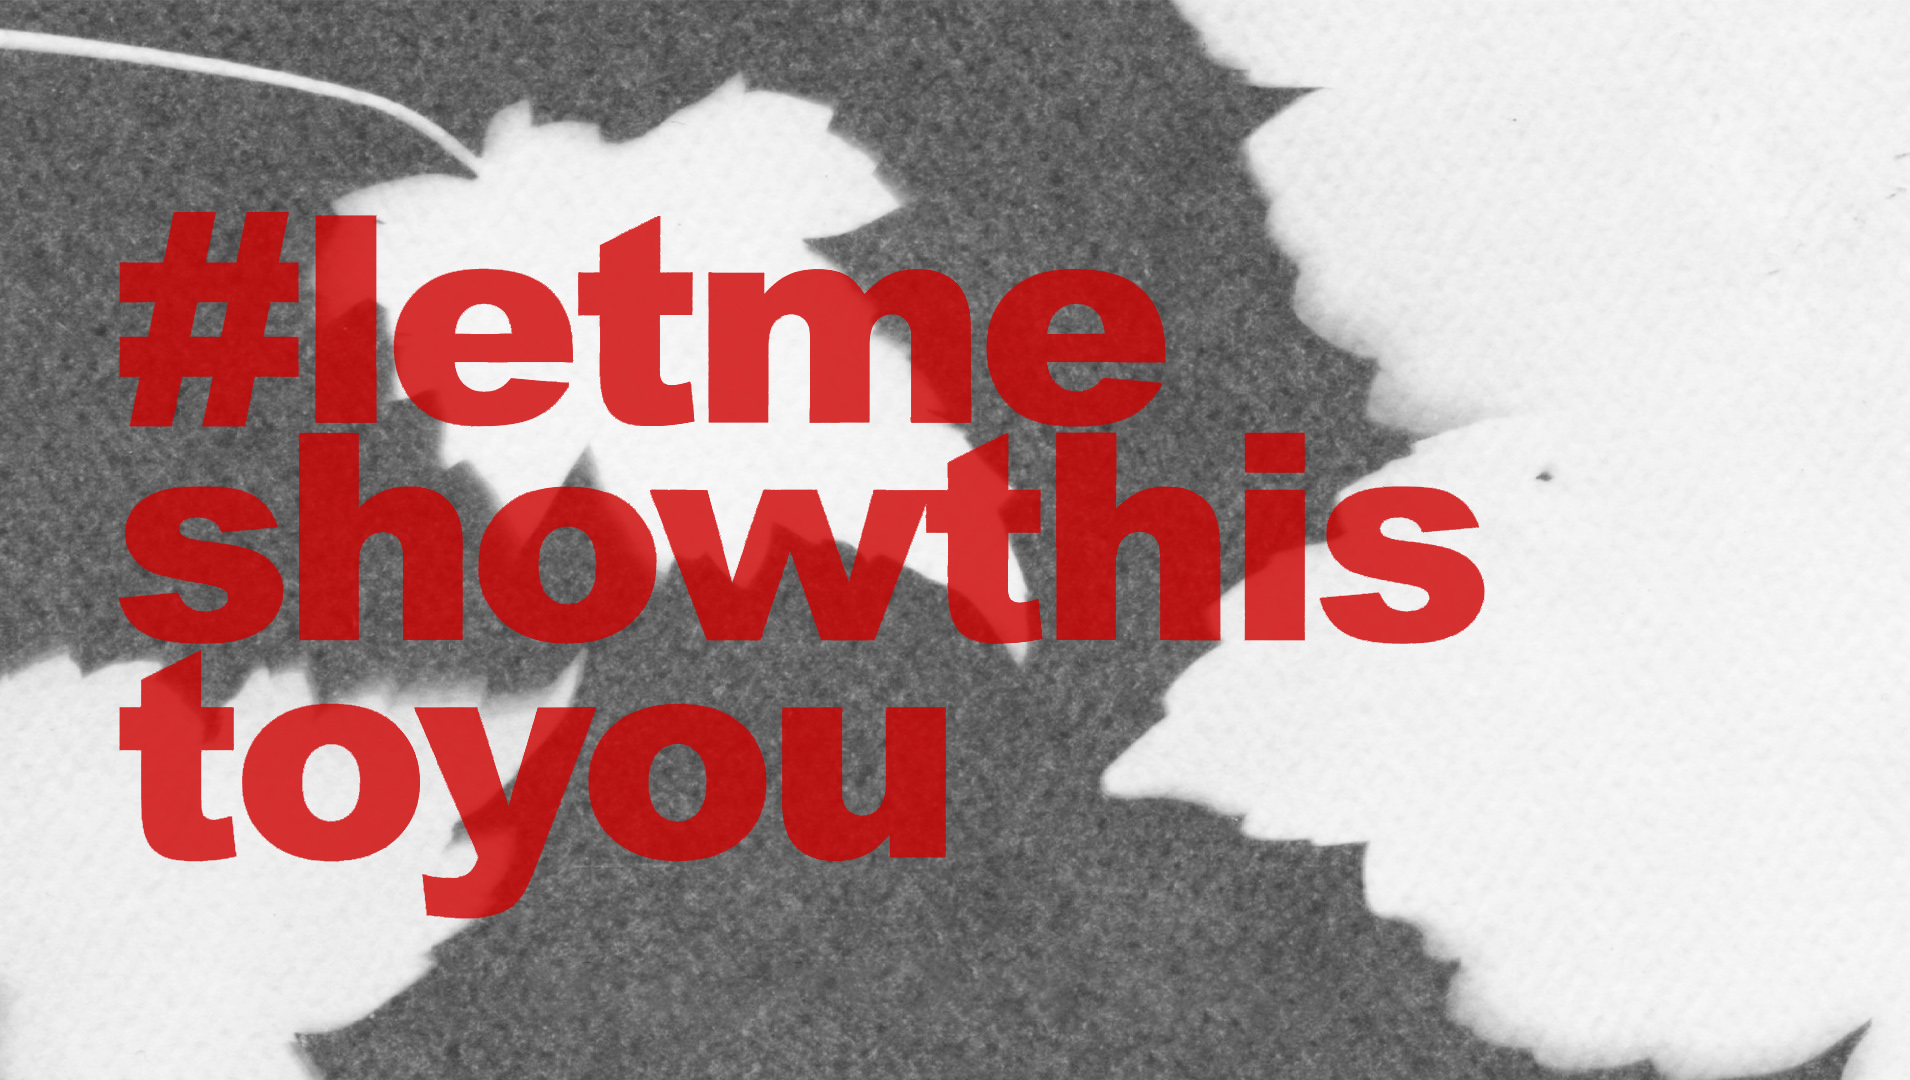 2020_Activity_Banner_letmeshowthistoyou-2